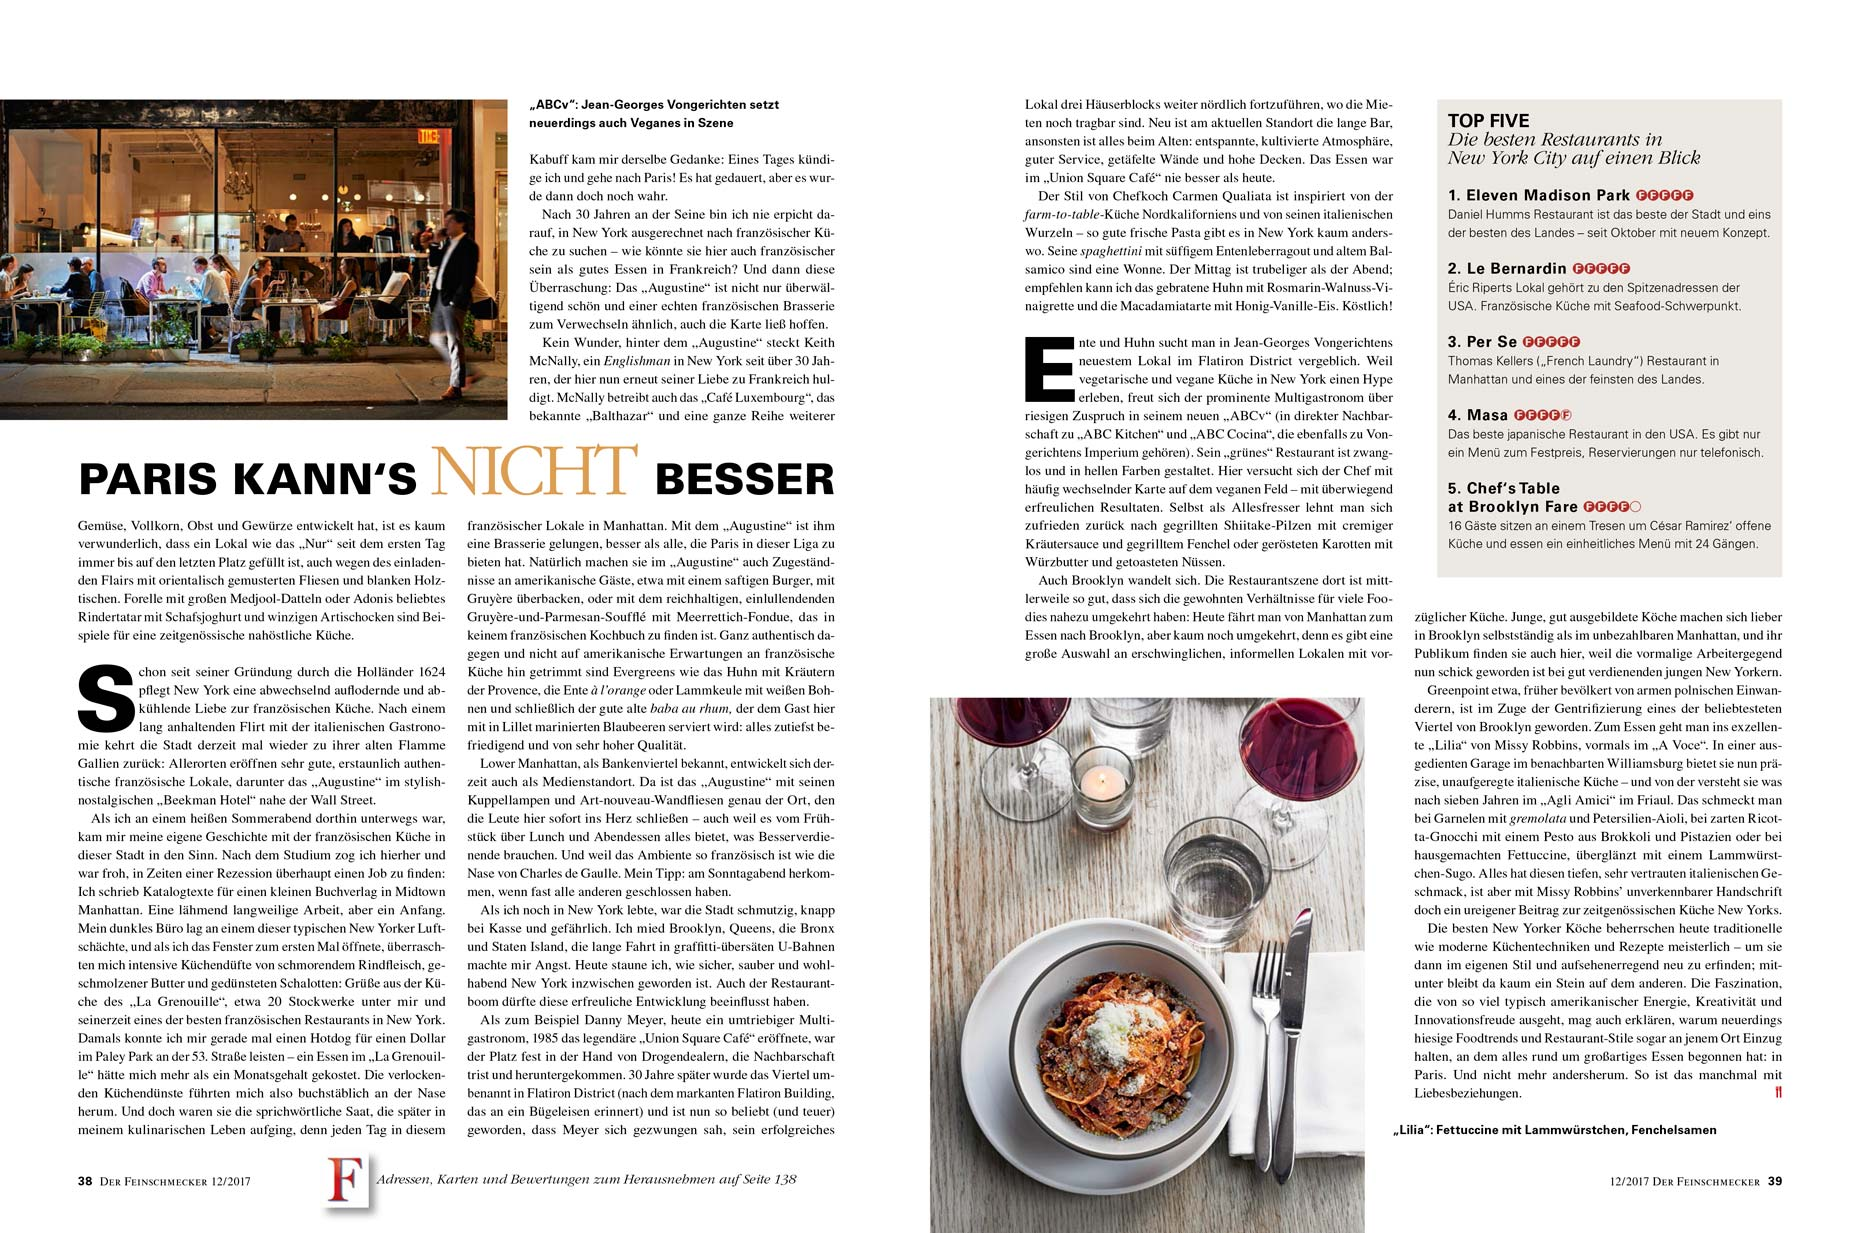 gourmet_germany_feinschmecker_newyork_food_adrianmueller_09b